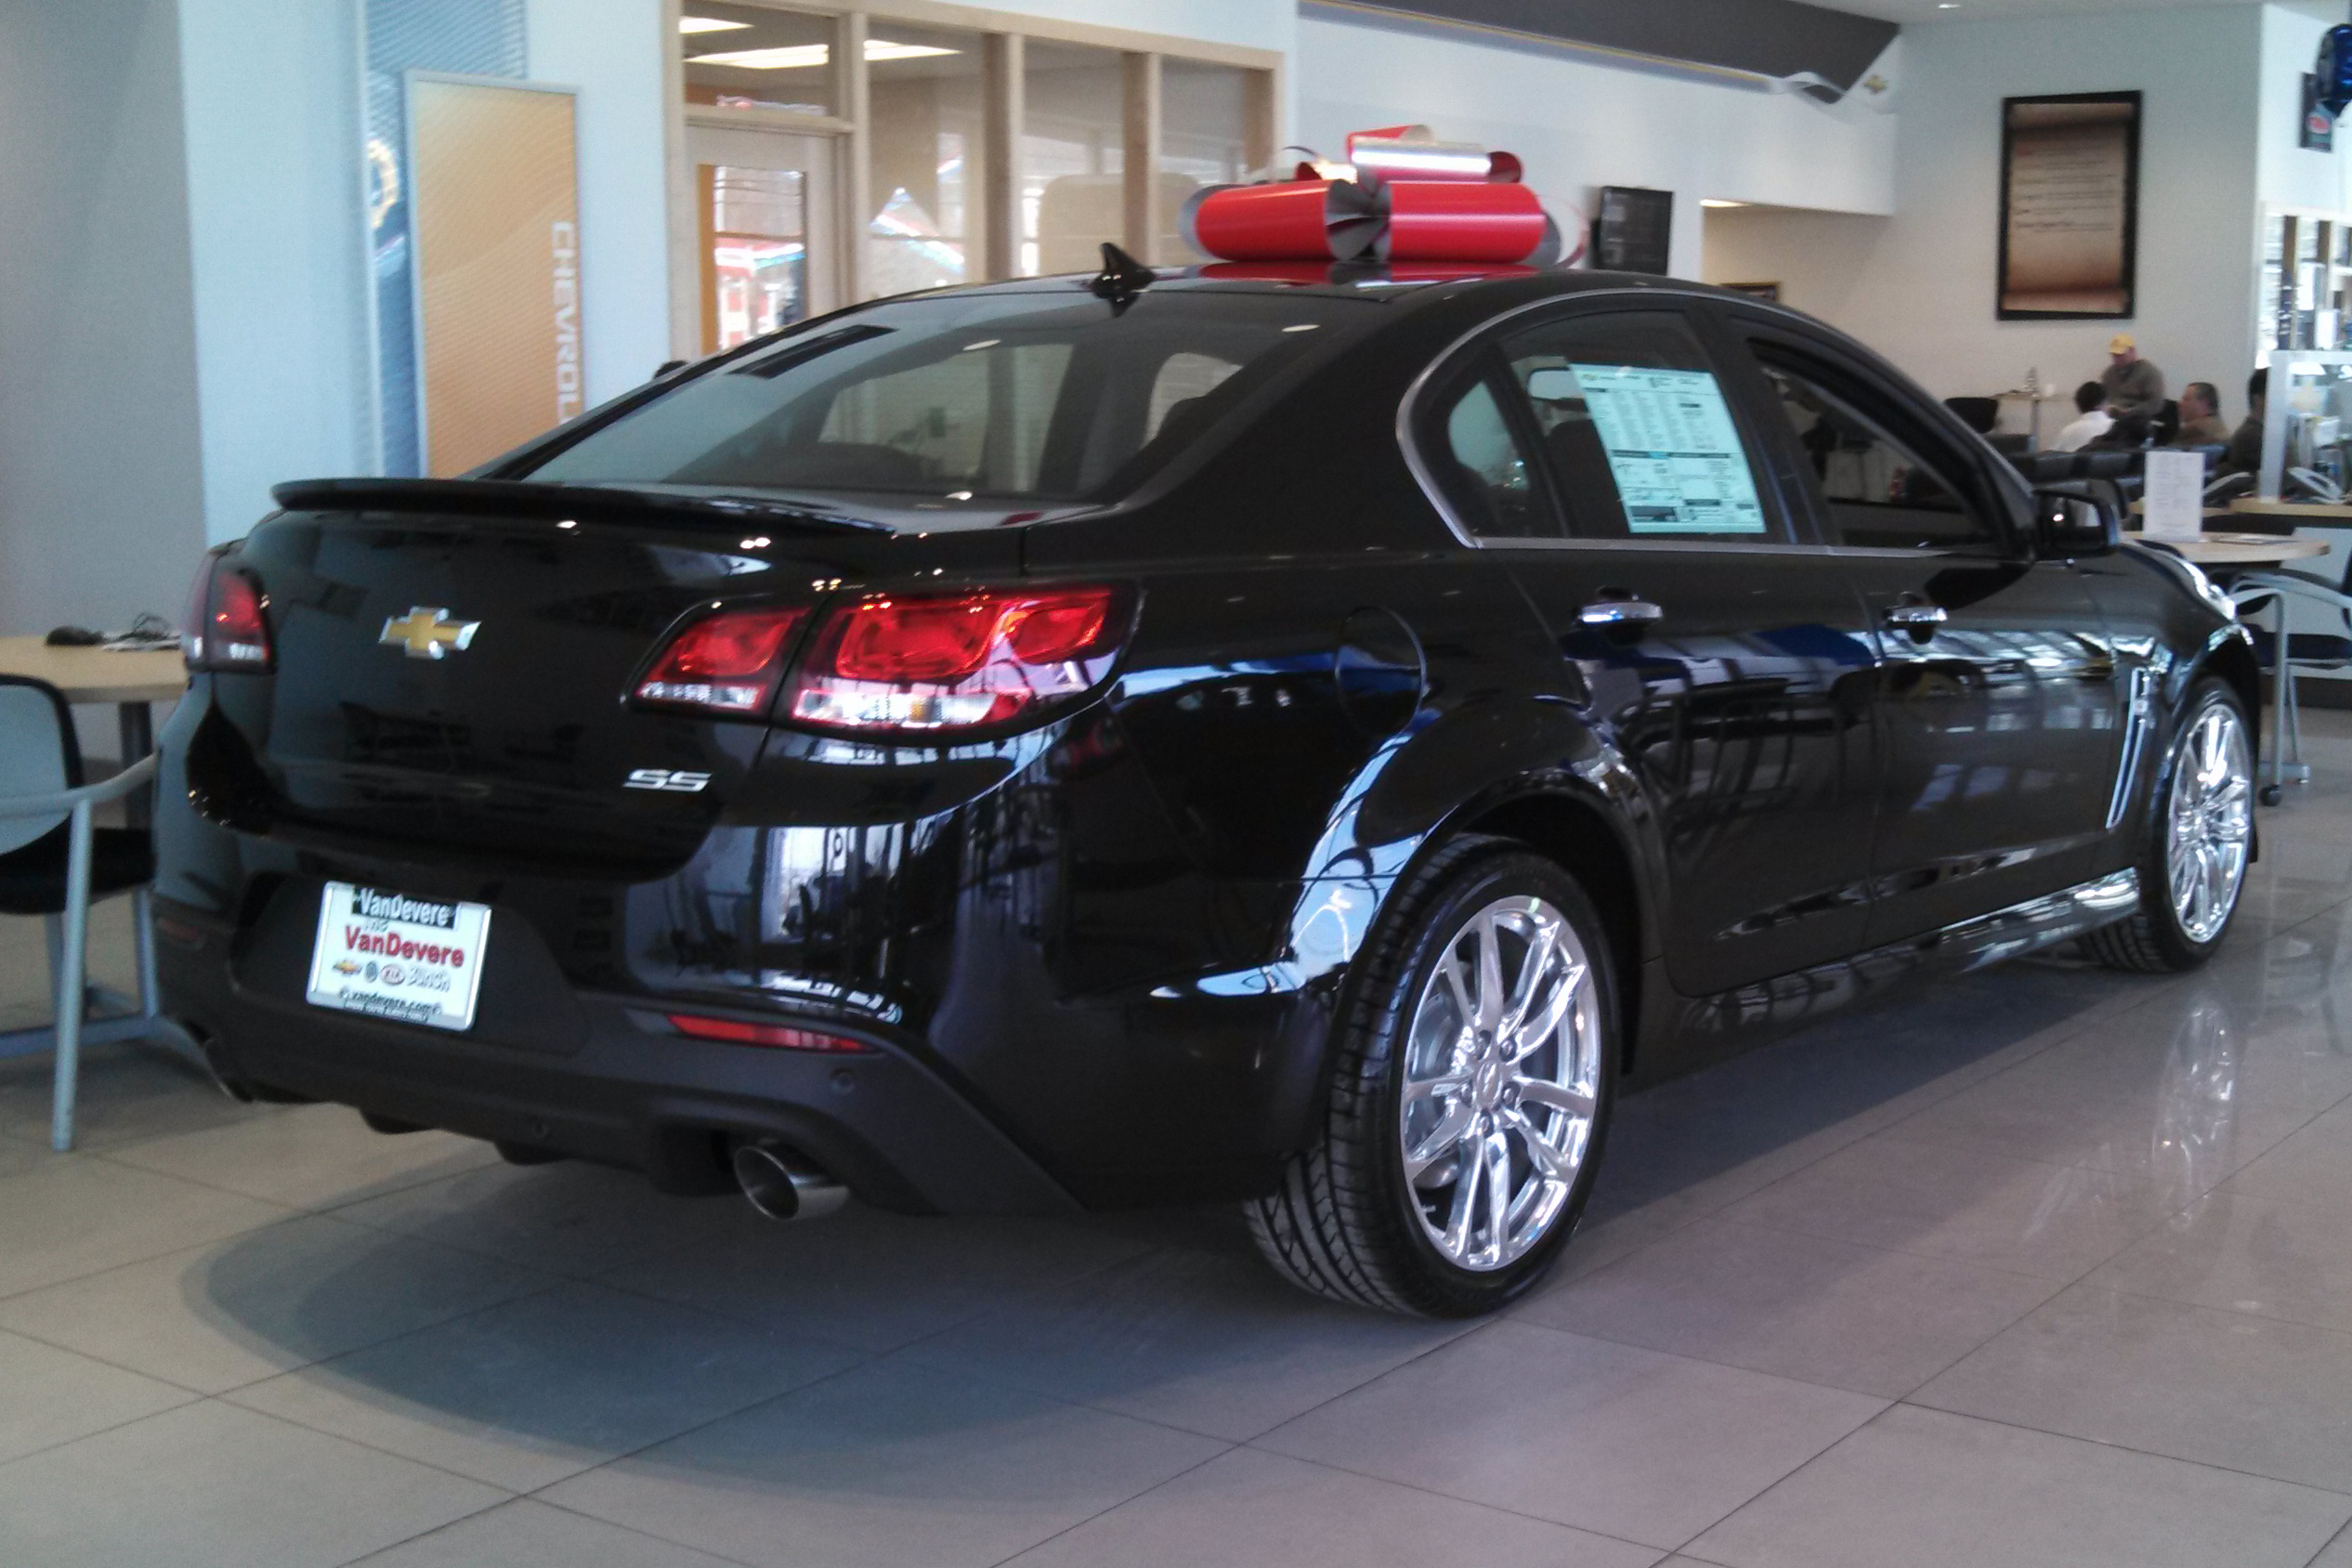 2014 Chevy Chevrolet SS Sedan at VanDevere Chevrolet in Akron Ohio